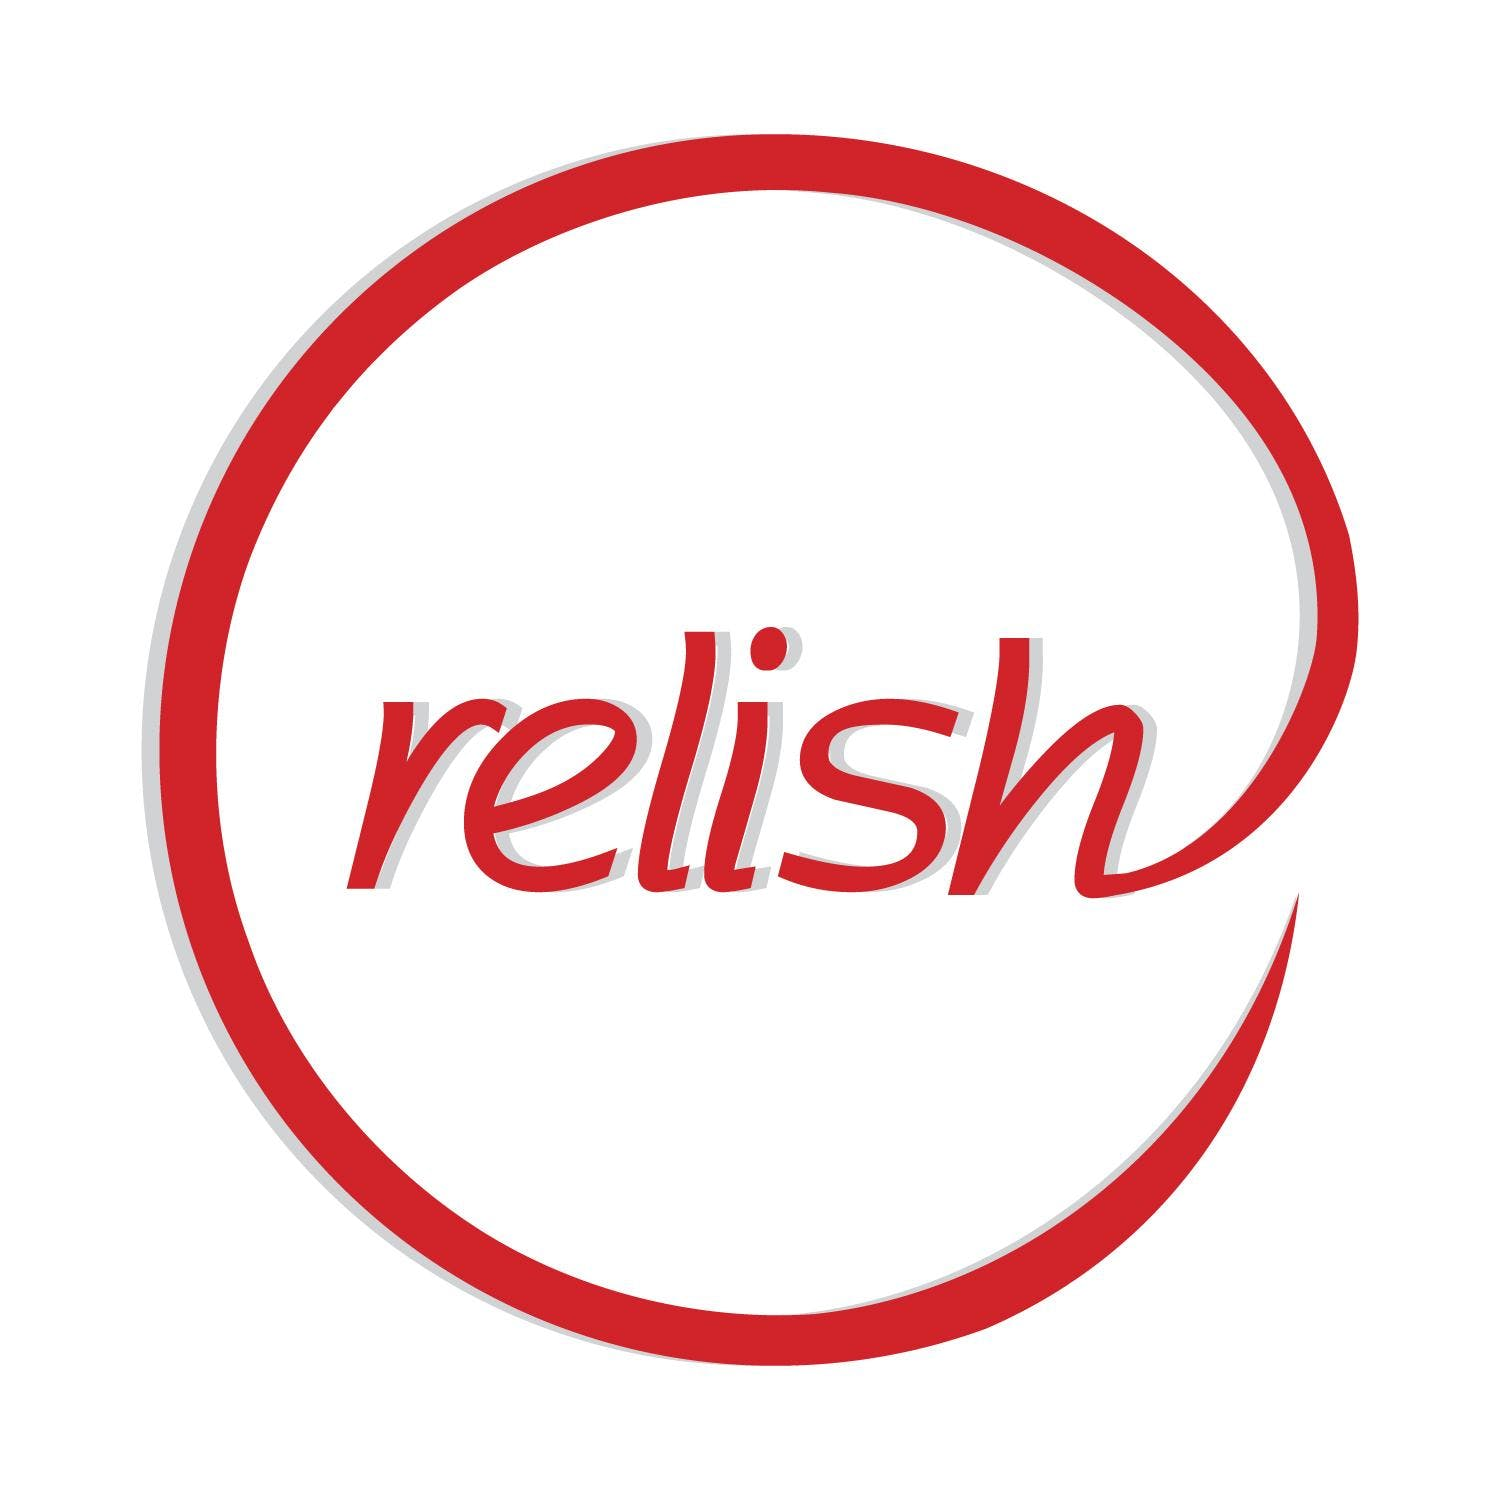 Who Do You Relish? Saturday Singles Event in